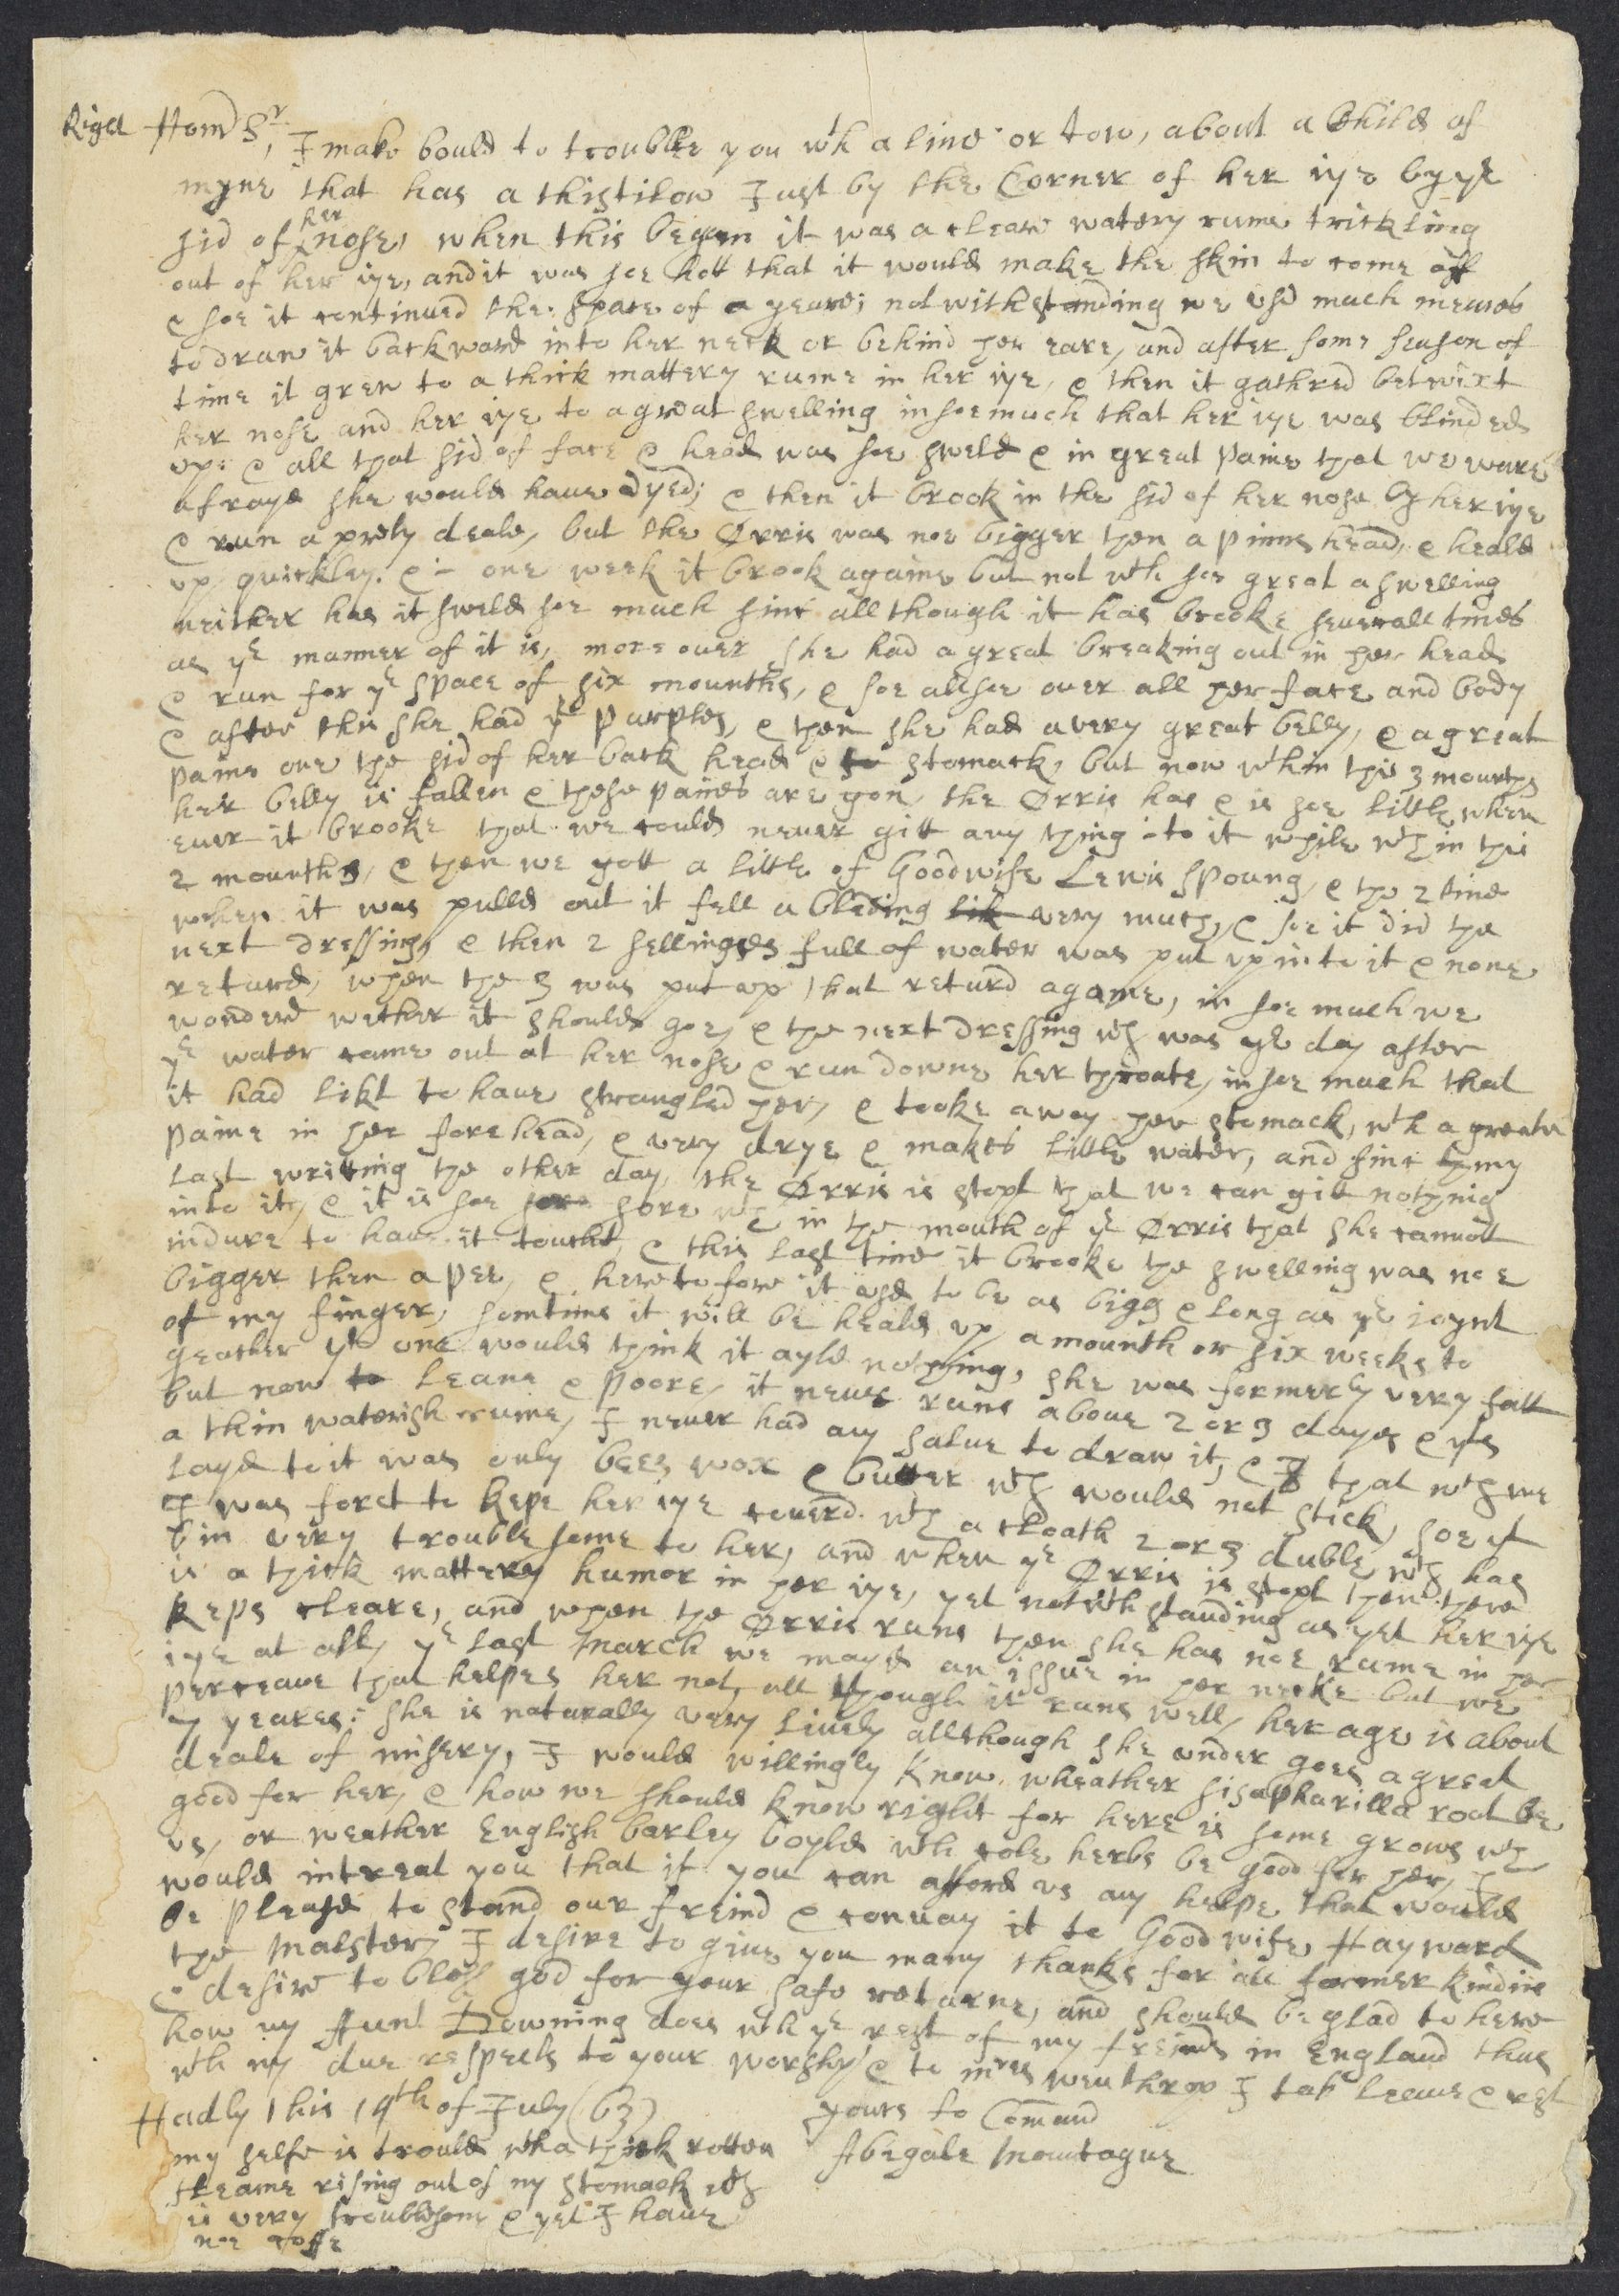 Montague, Abigale, autographed letter signed to John Winthrop; Hadley, Mass., 1 side (2 pages), 1663 July 19